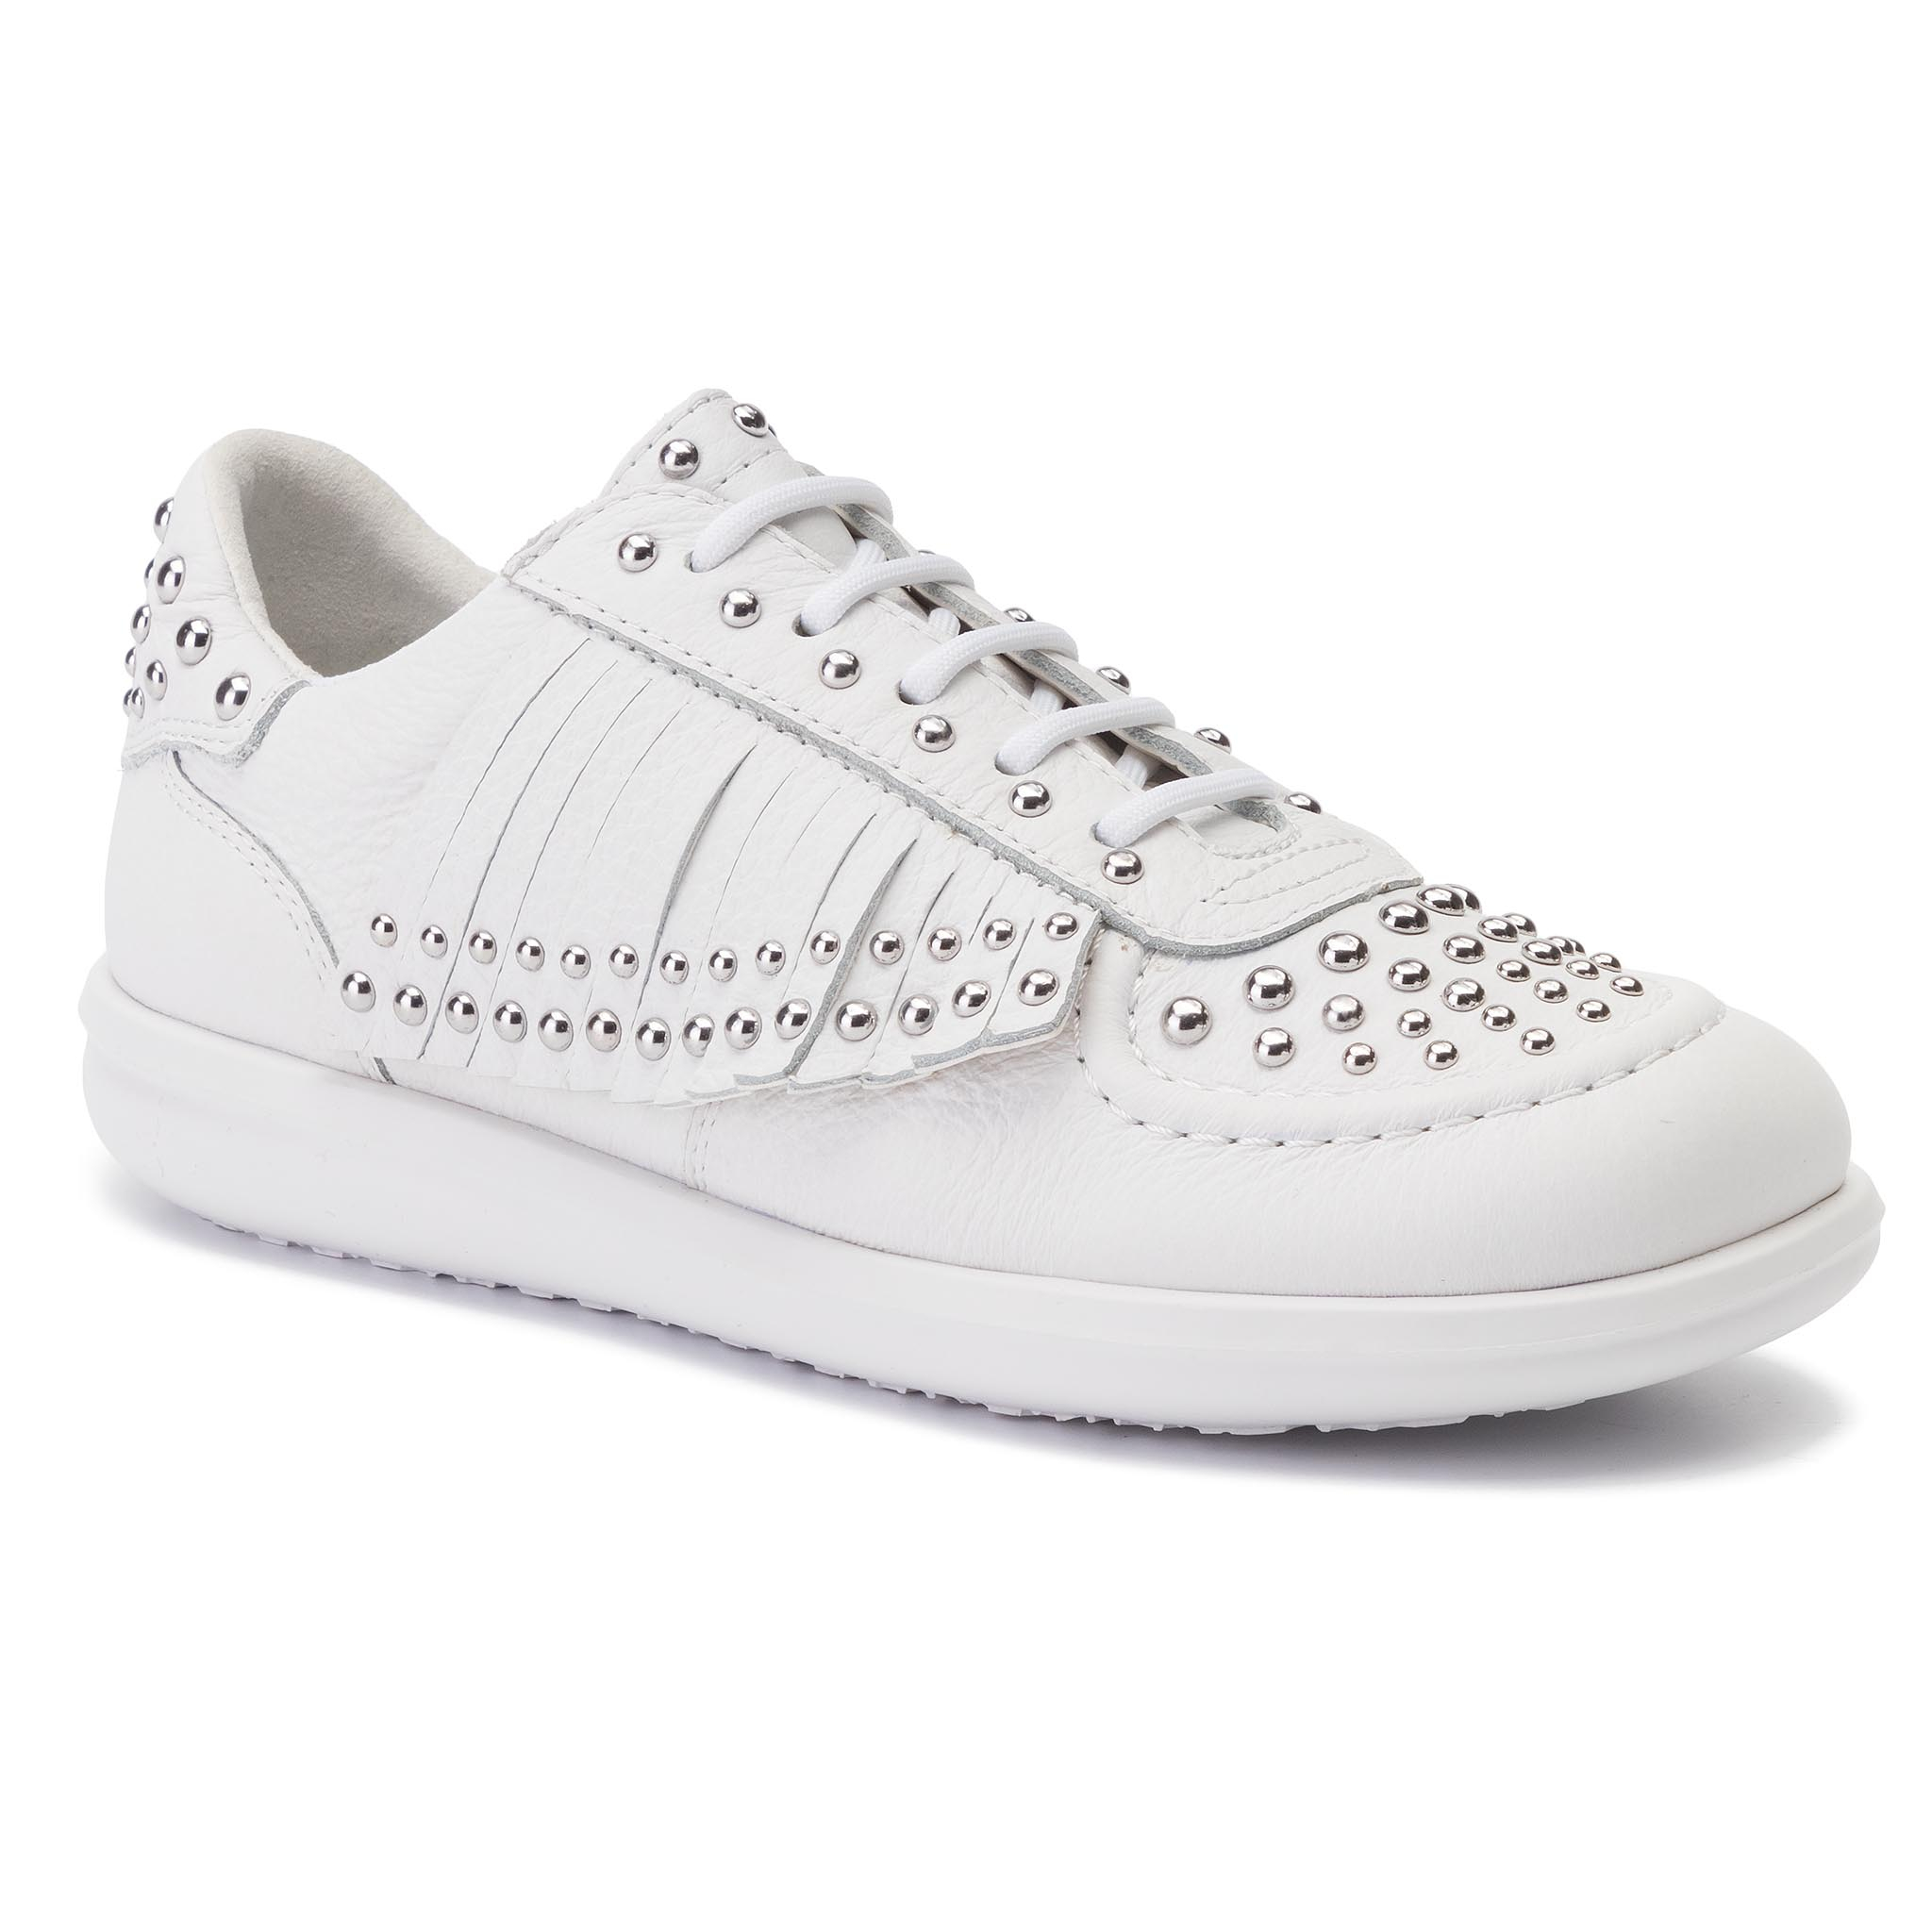 Sneakers GEOX - D Jearl H D92CSH 00046 C1000 White